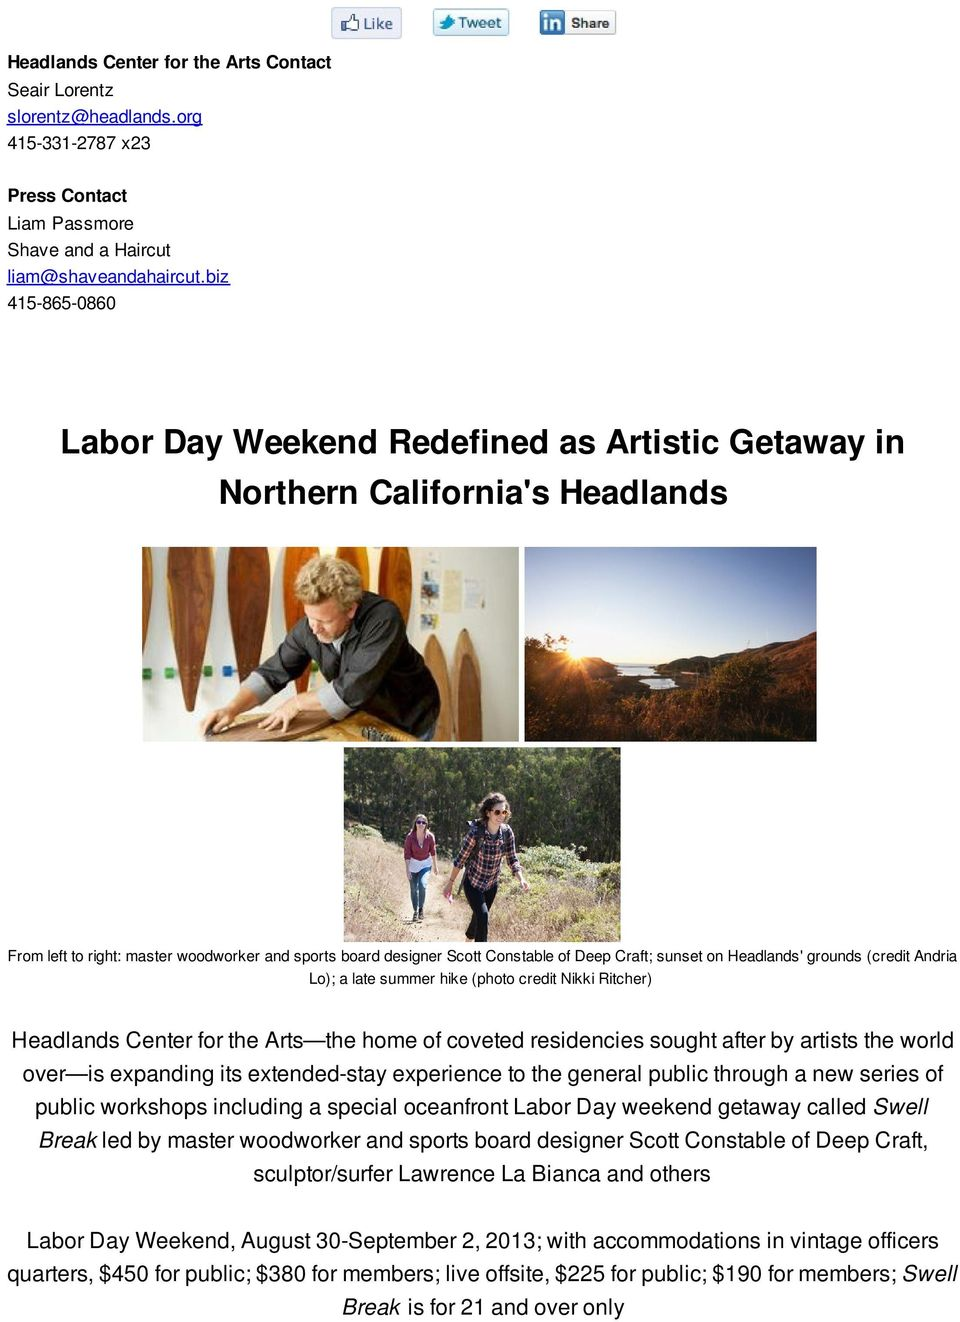 Labor Day Weekend Redefined as Artistic Getaway in Northern